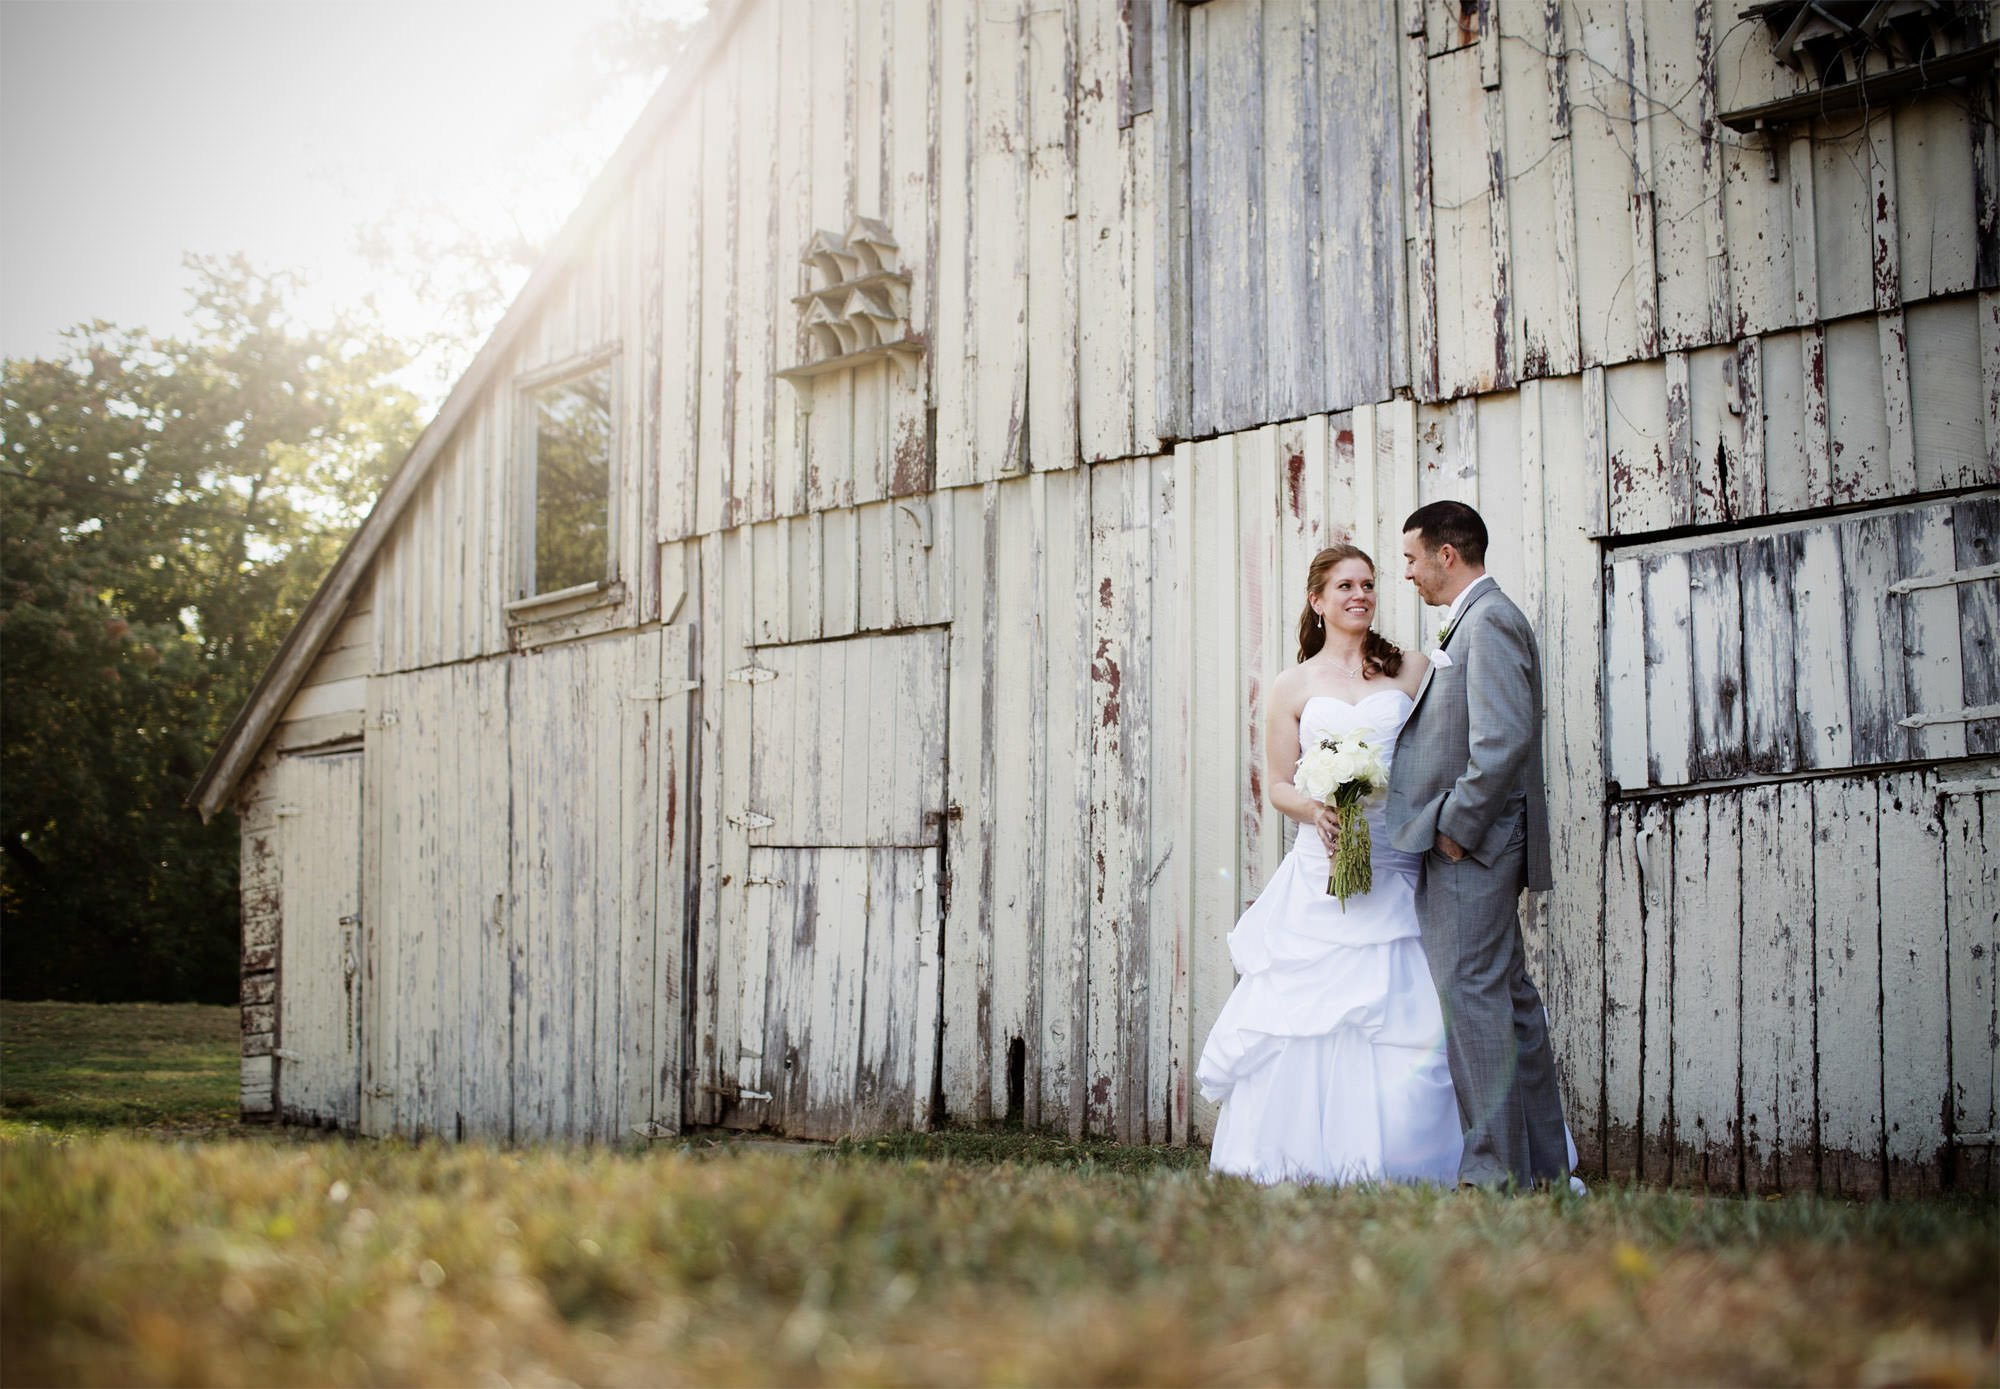 The bride and groom pose beside a barn during their Comus Inn wedding.